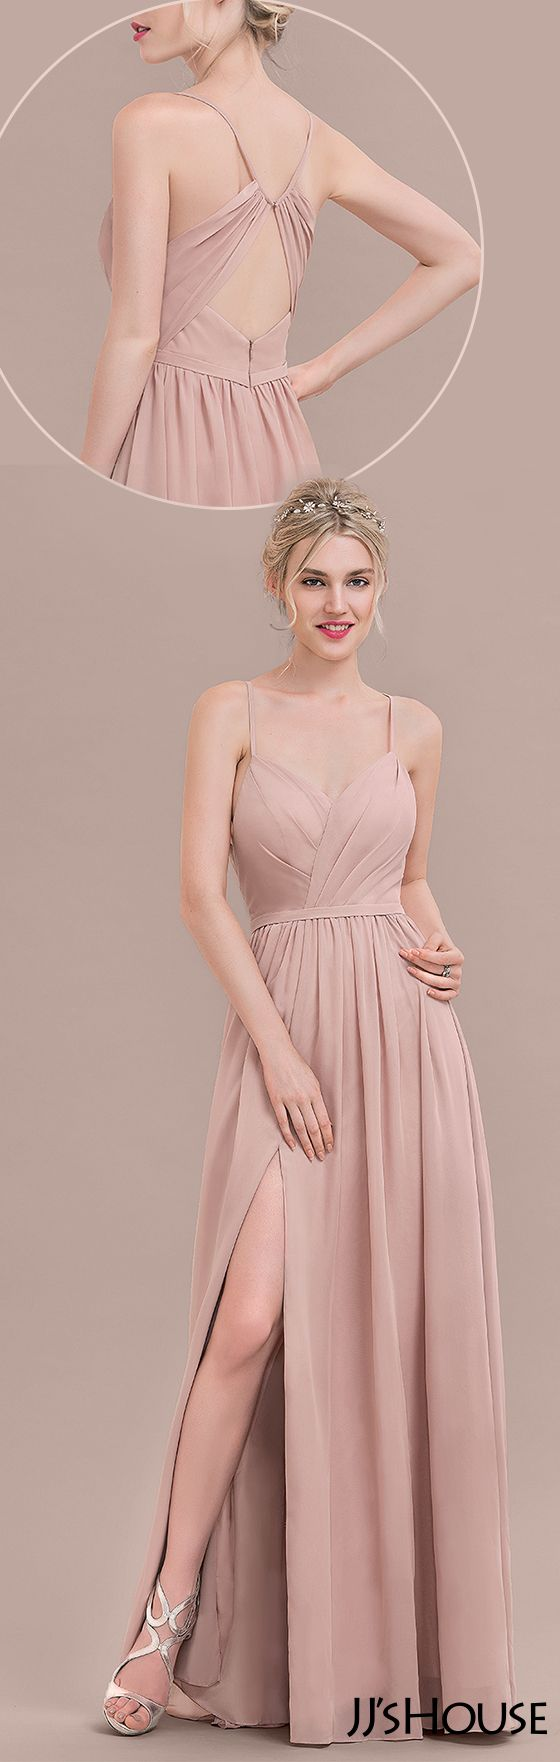 Vestidos | Vestidos HERMOSOS! D: | Pinterest | Prom, Clothes and Gowns